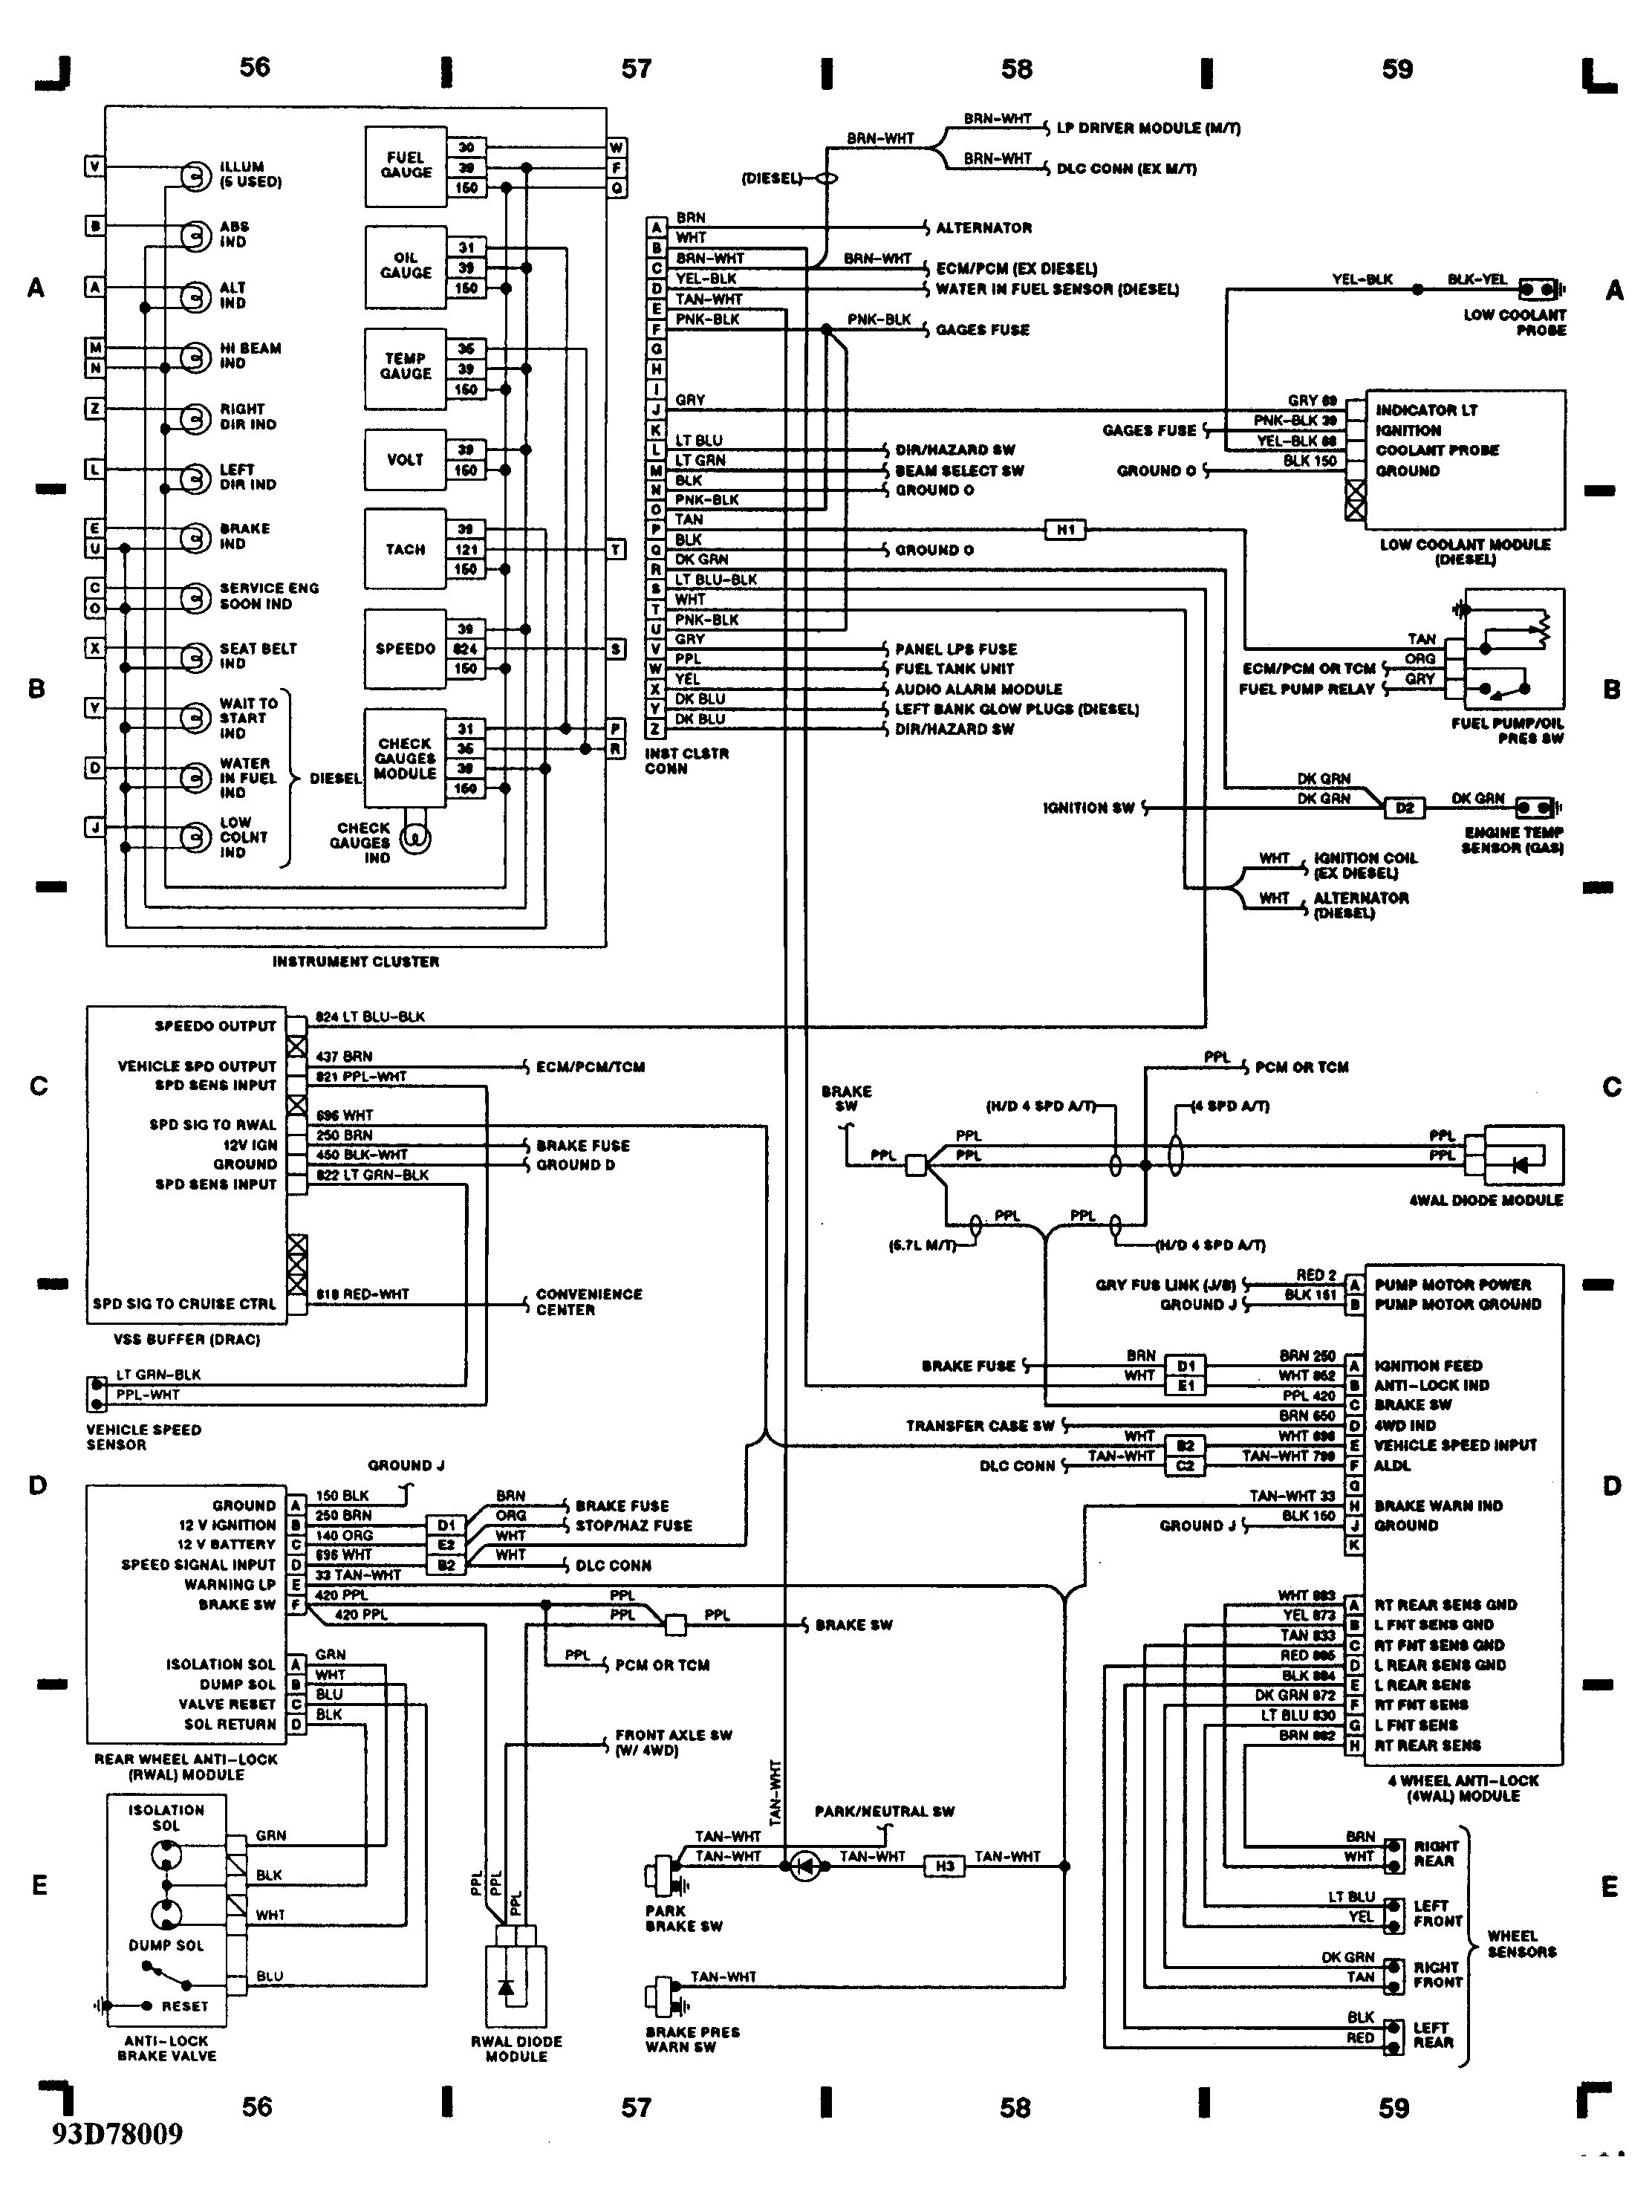 cb447b 2004 silverado tail light wiring diagram | wiring library  wiring library